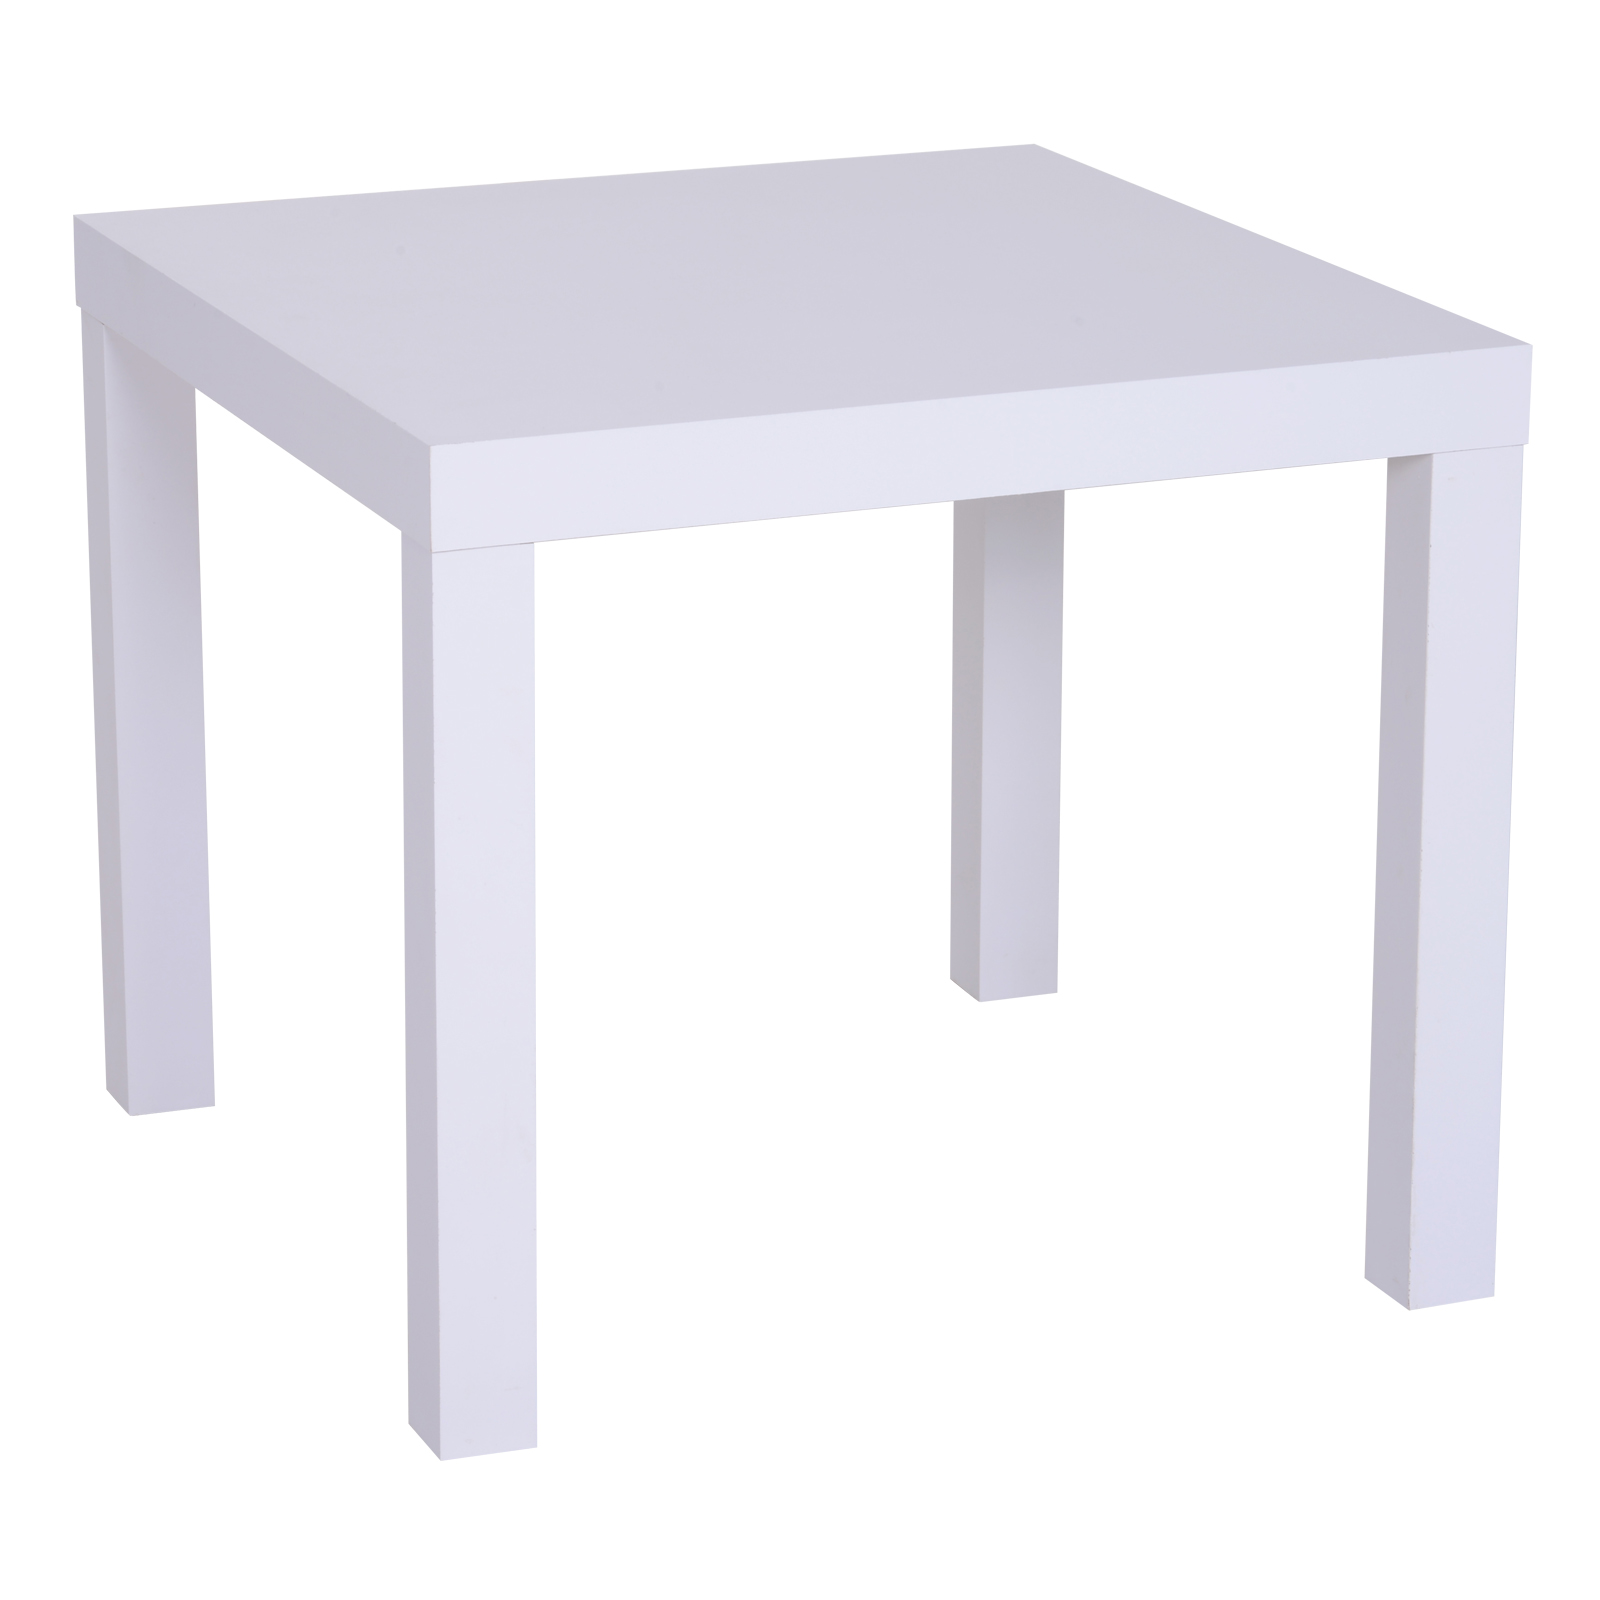 Homcom Table basse carrée table d'appoint design contemporain dim. 51L x 51l x 45H cm panneau en nid d'abeille blanc